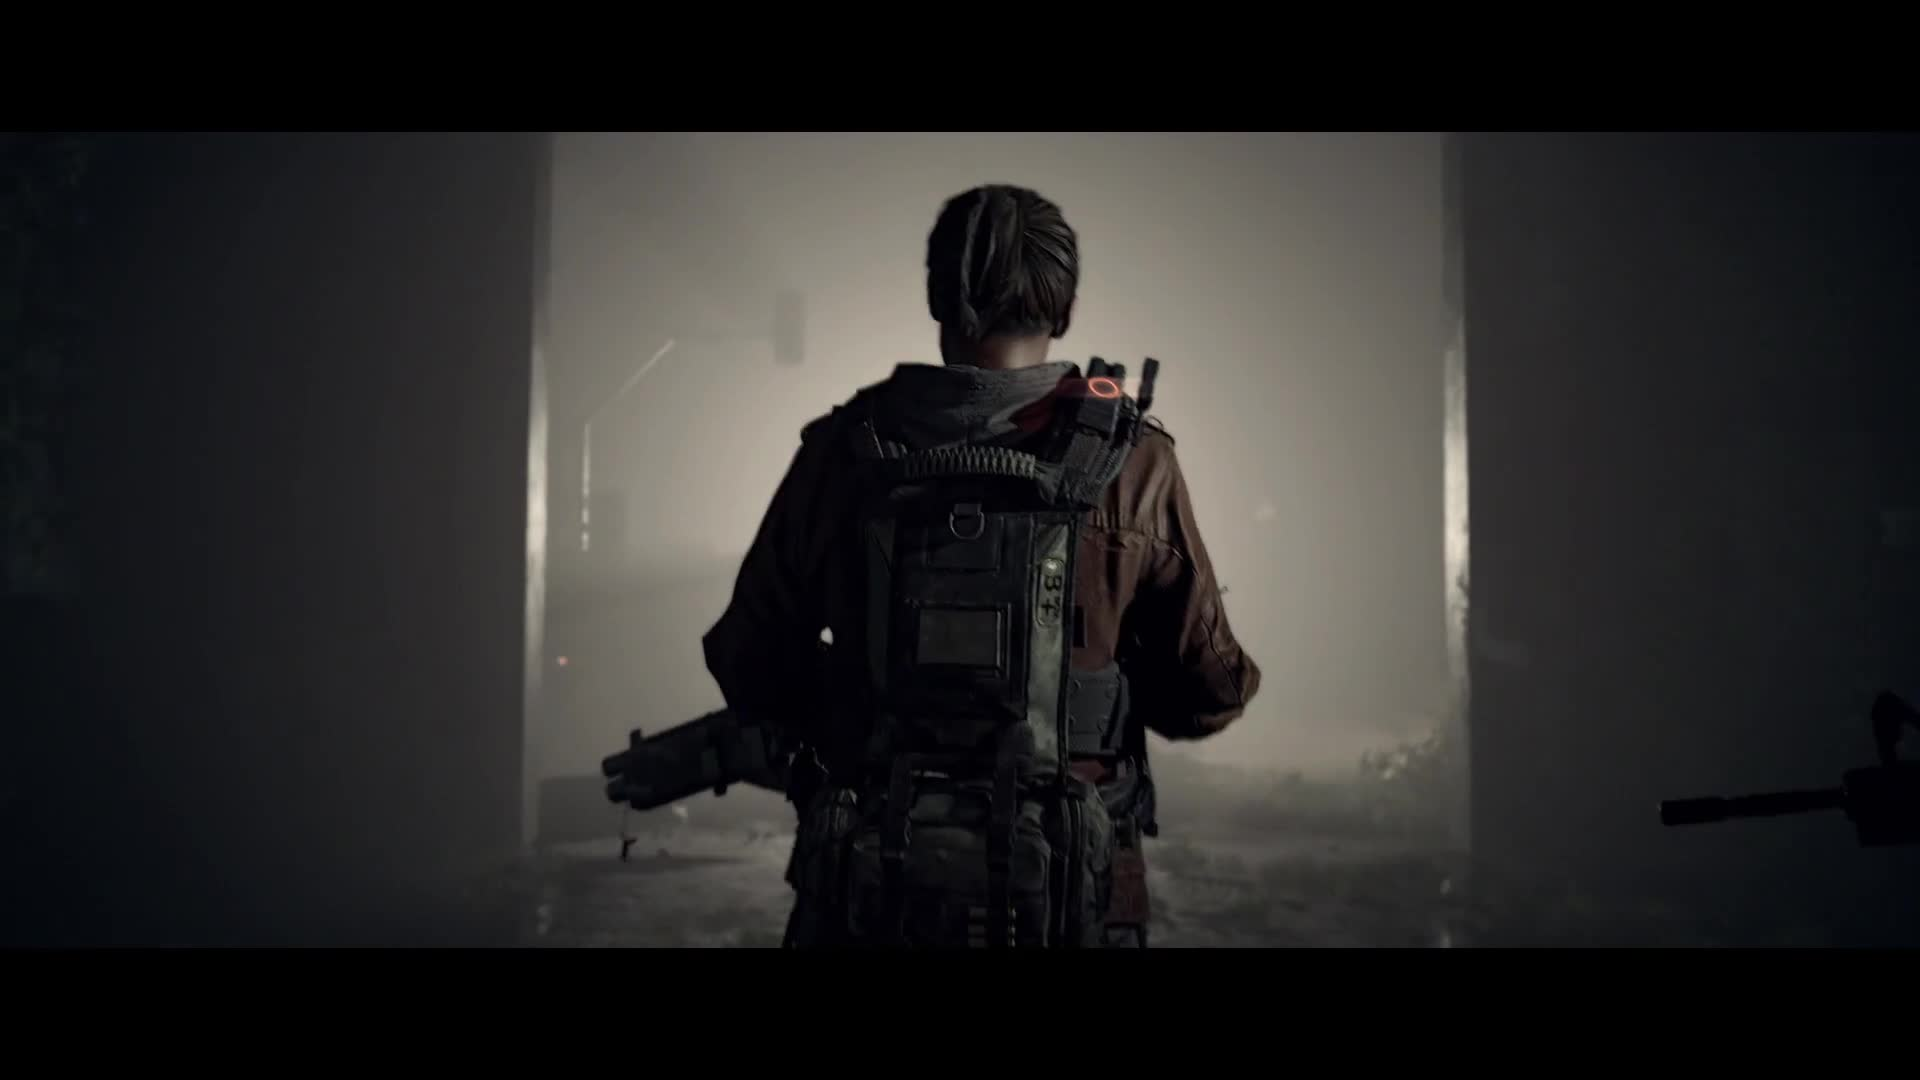 Trailer, Ubisoft, actionspiel, Tom Clancy, Tom Clancy's The Division, The Division 2, Tom Clancy's The Division 2